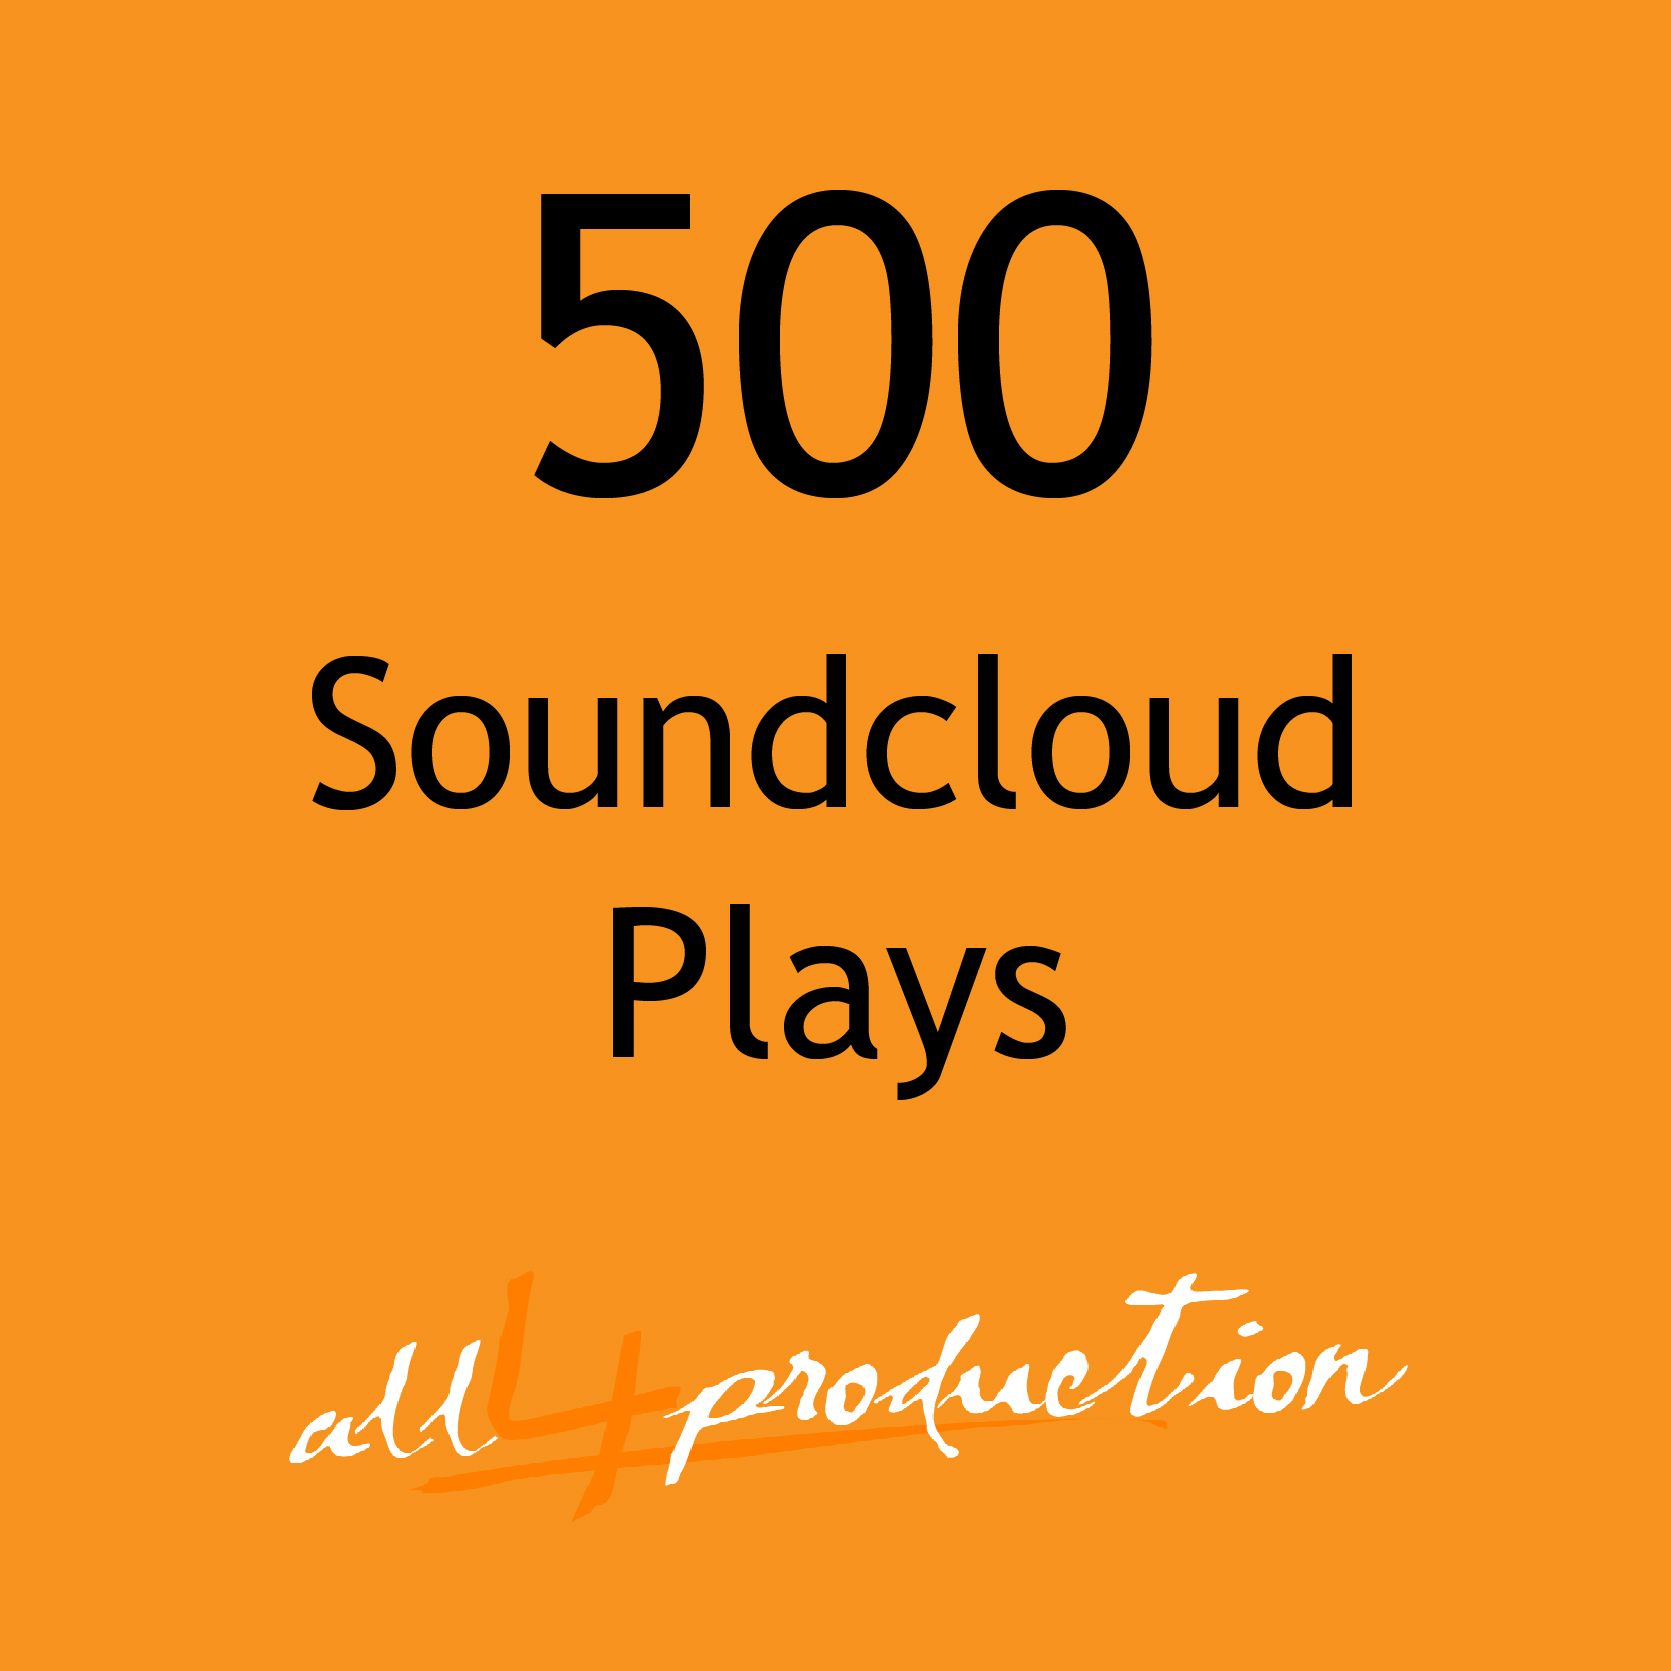 500 Soundcloud Plays Max Split on 4 Tracks